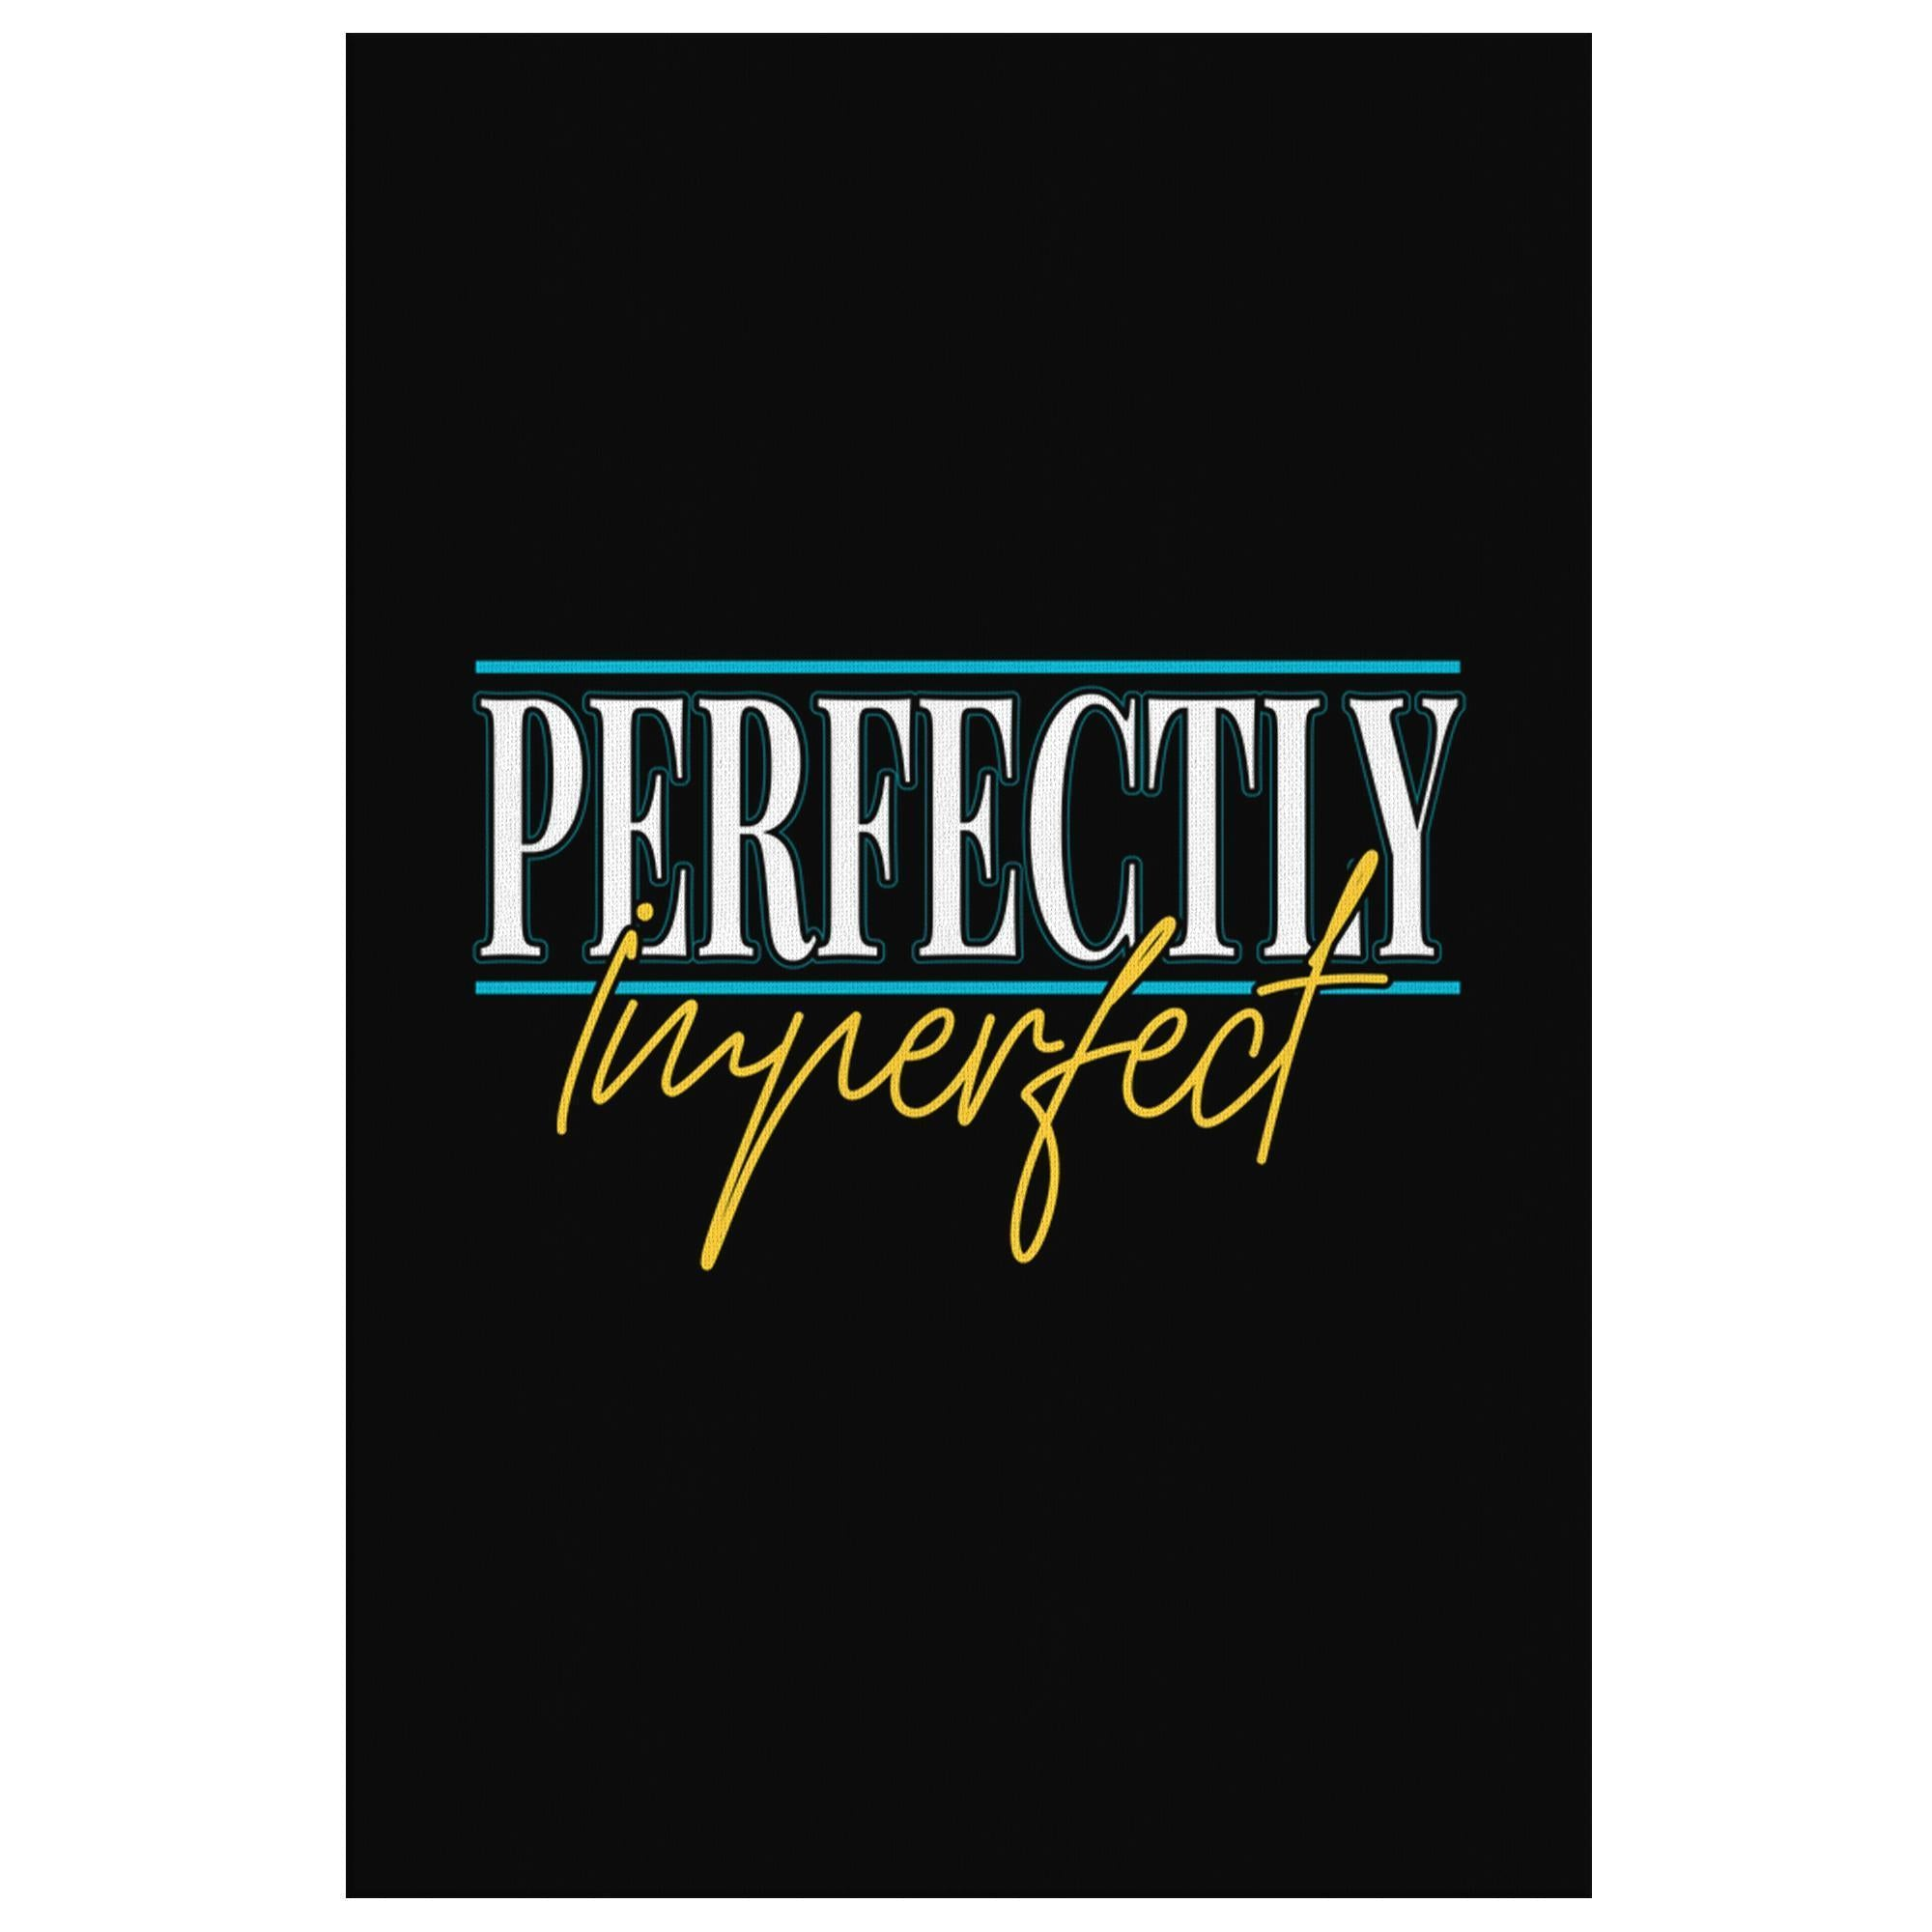 Perfectly Imperfect Funny Cute Christian Canvas Wall Art Room Decor Gift Ideas-Canvas Wall Art 2-8 x 12-JoyHip.Com